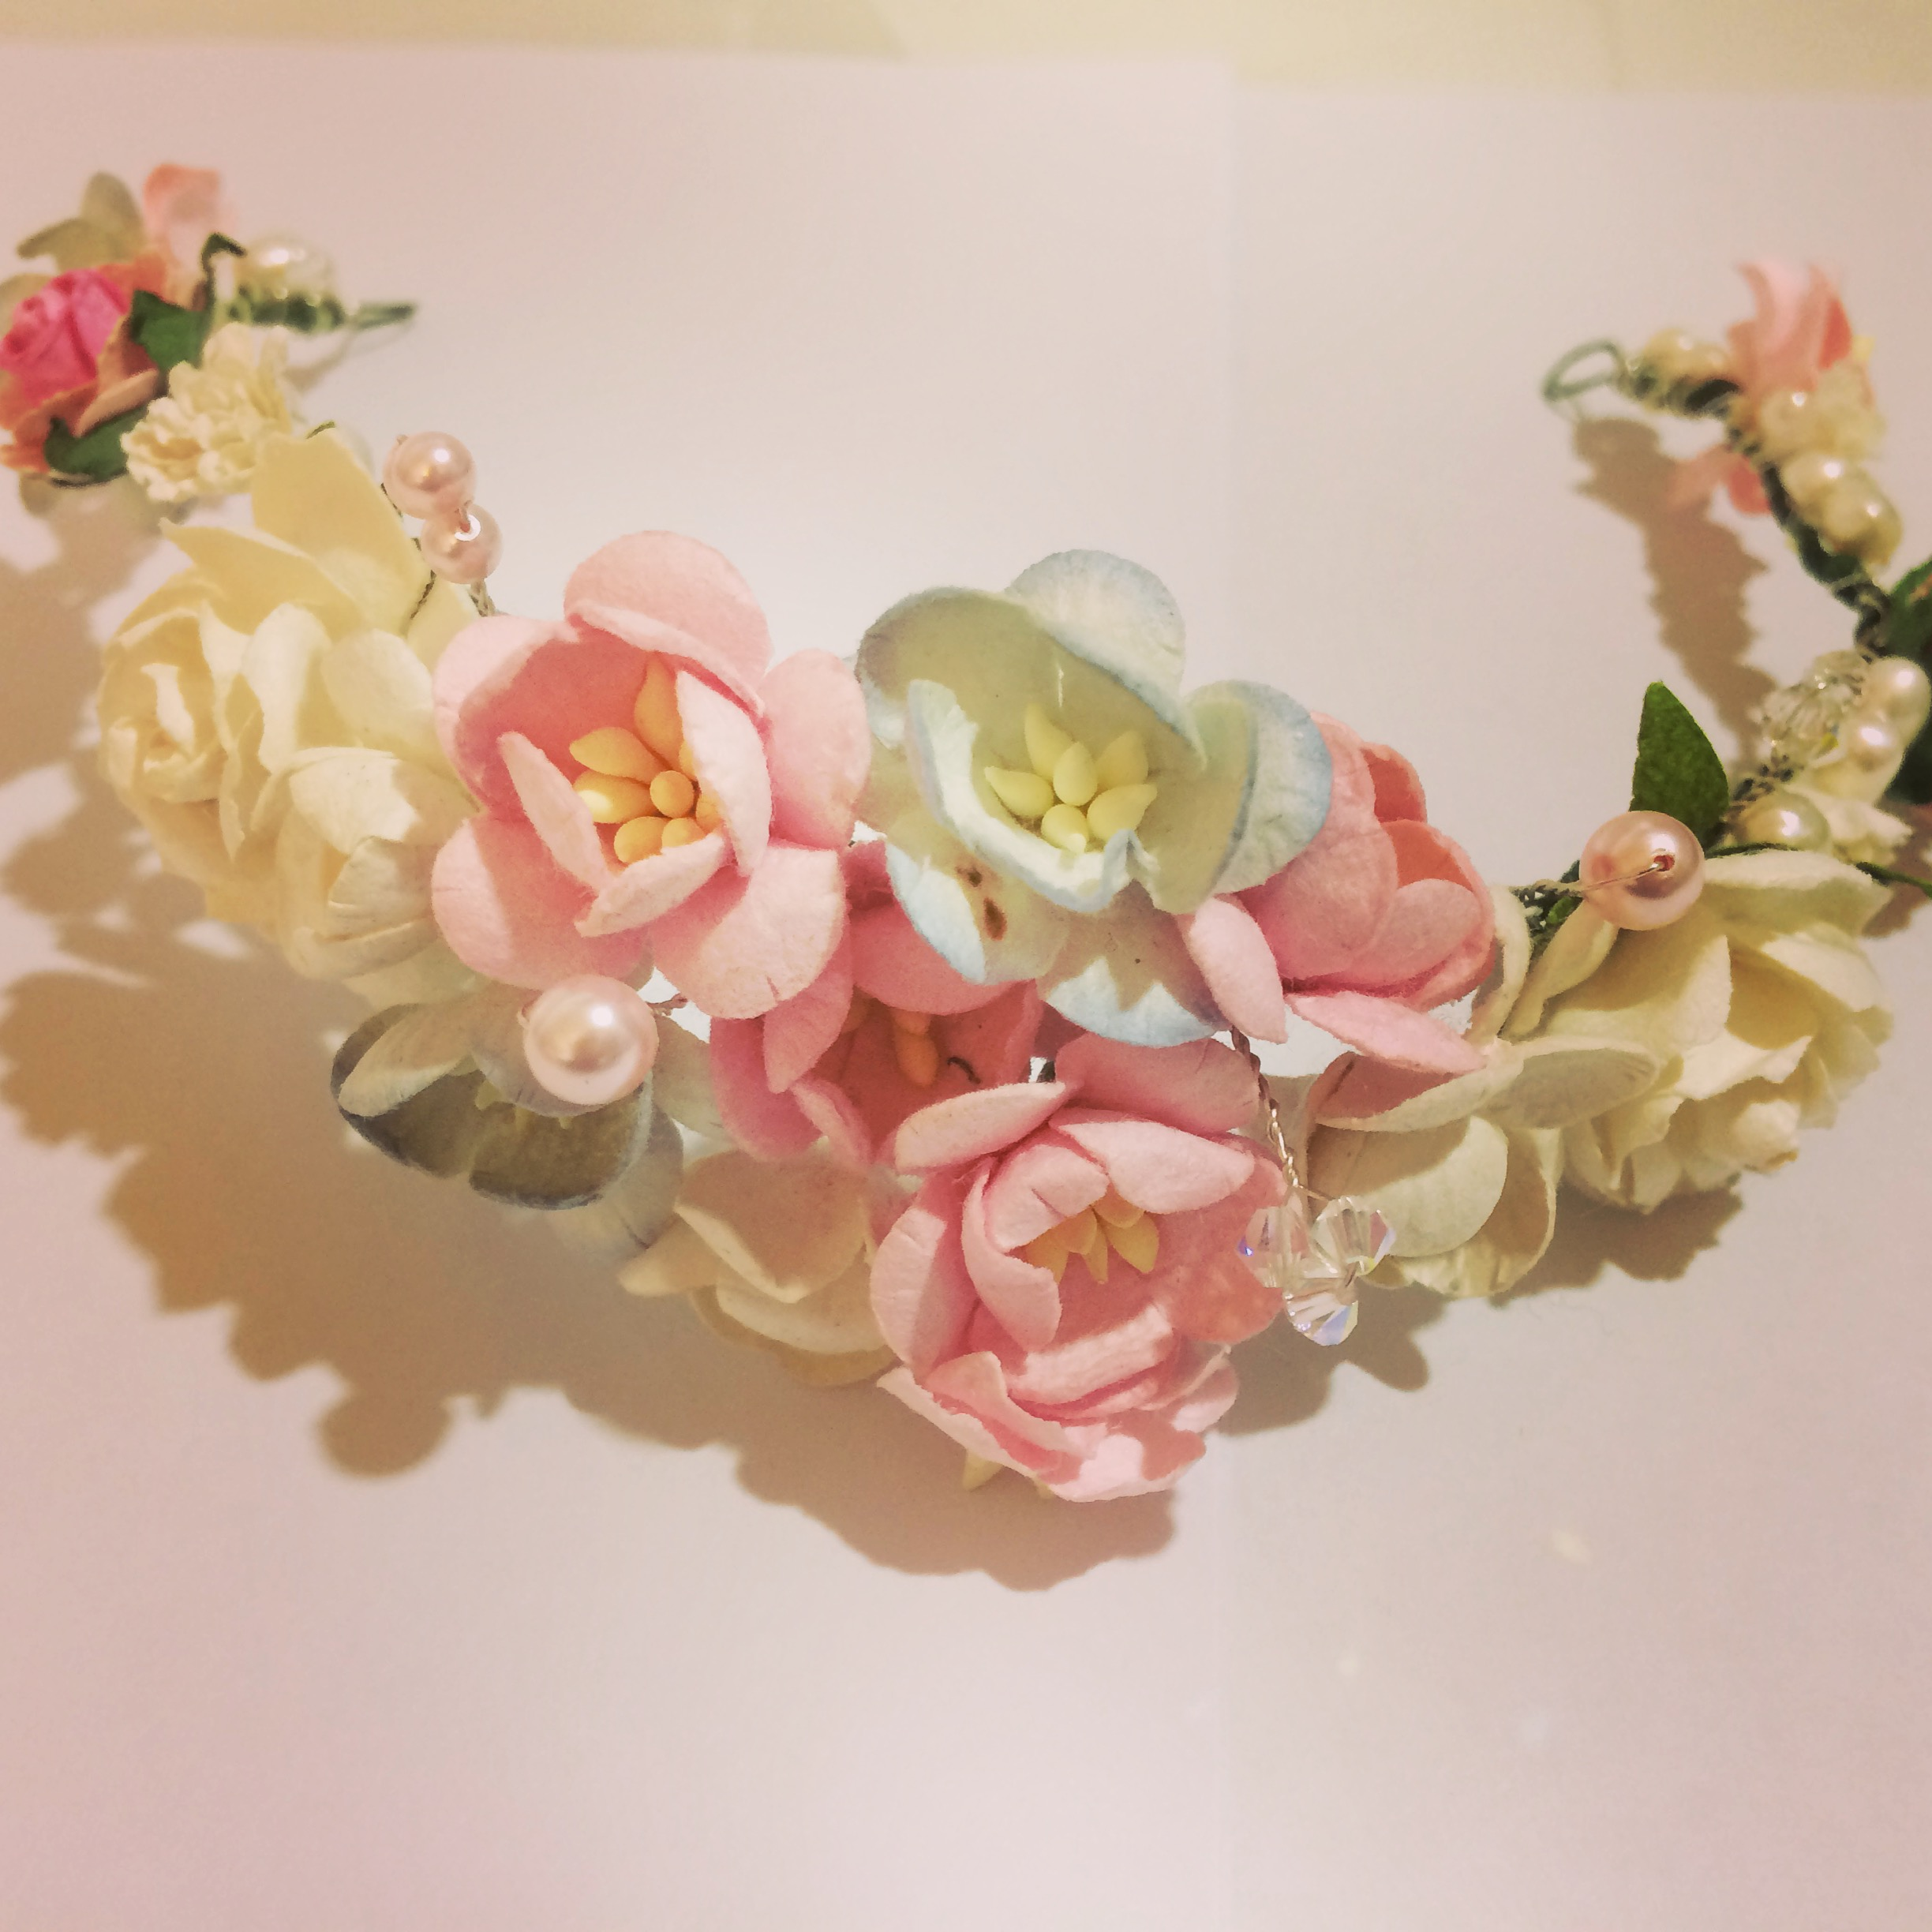 A flower garland with pink and ivory flowers